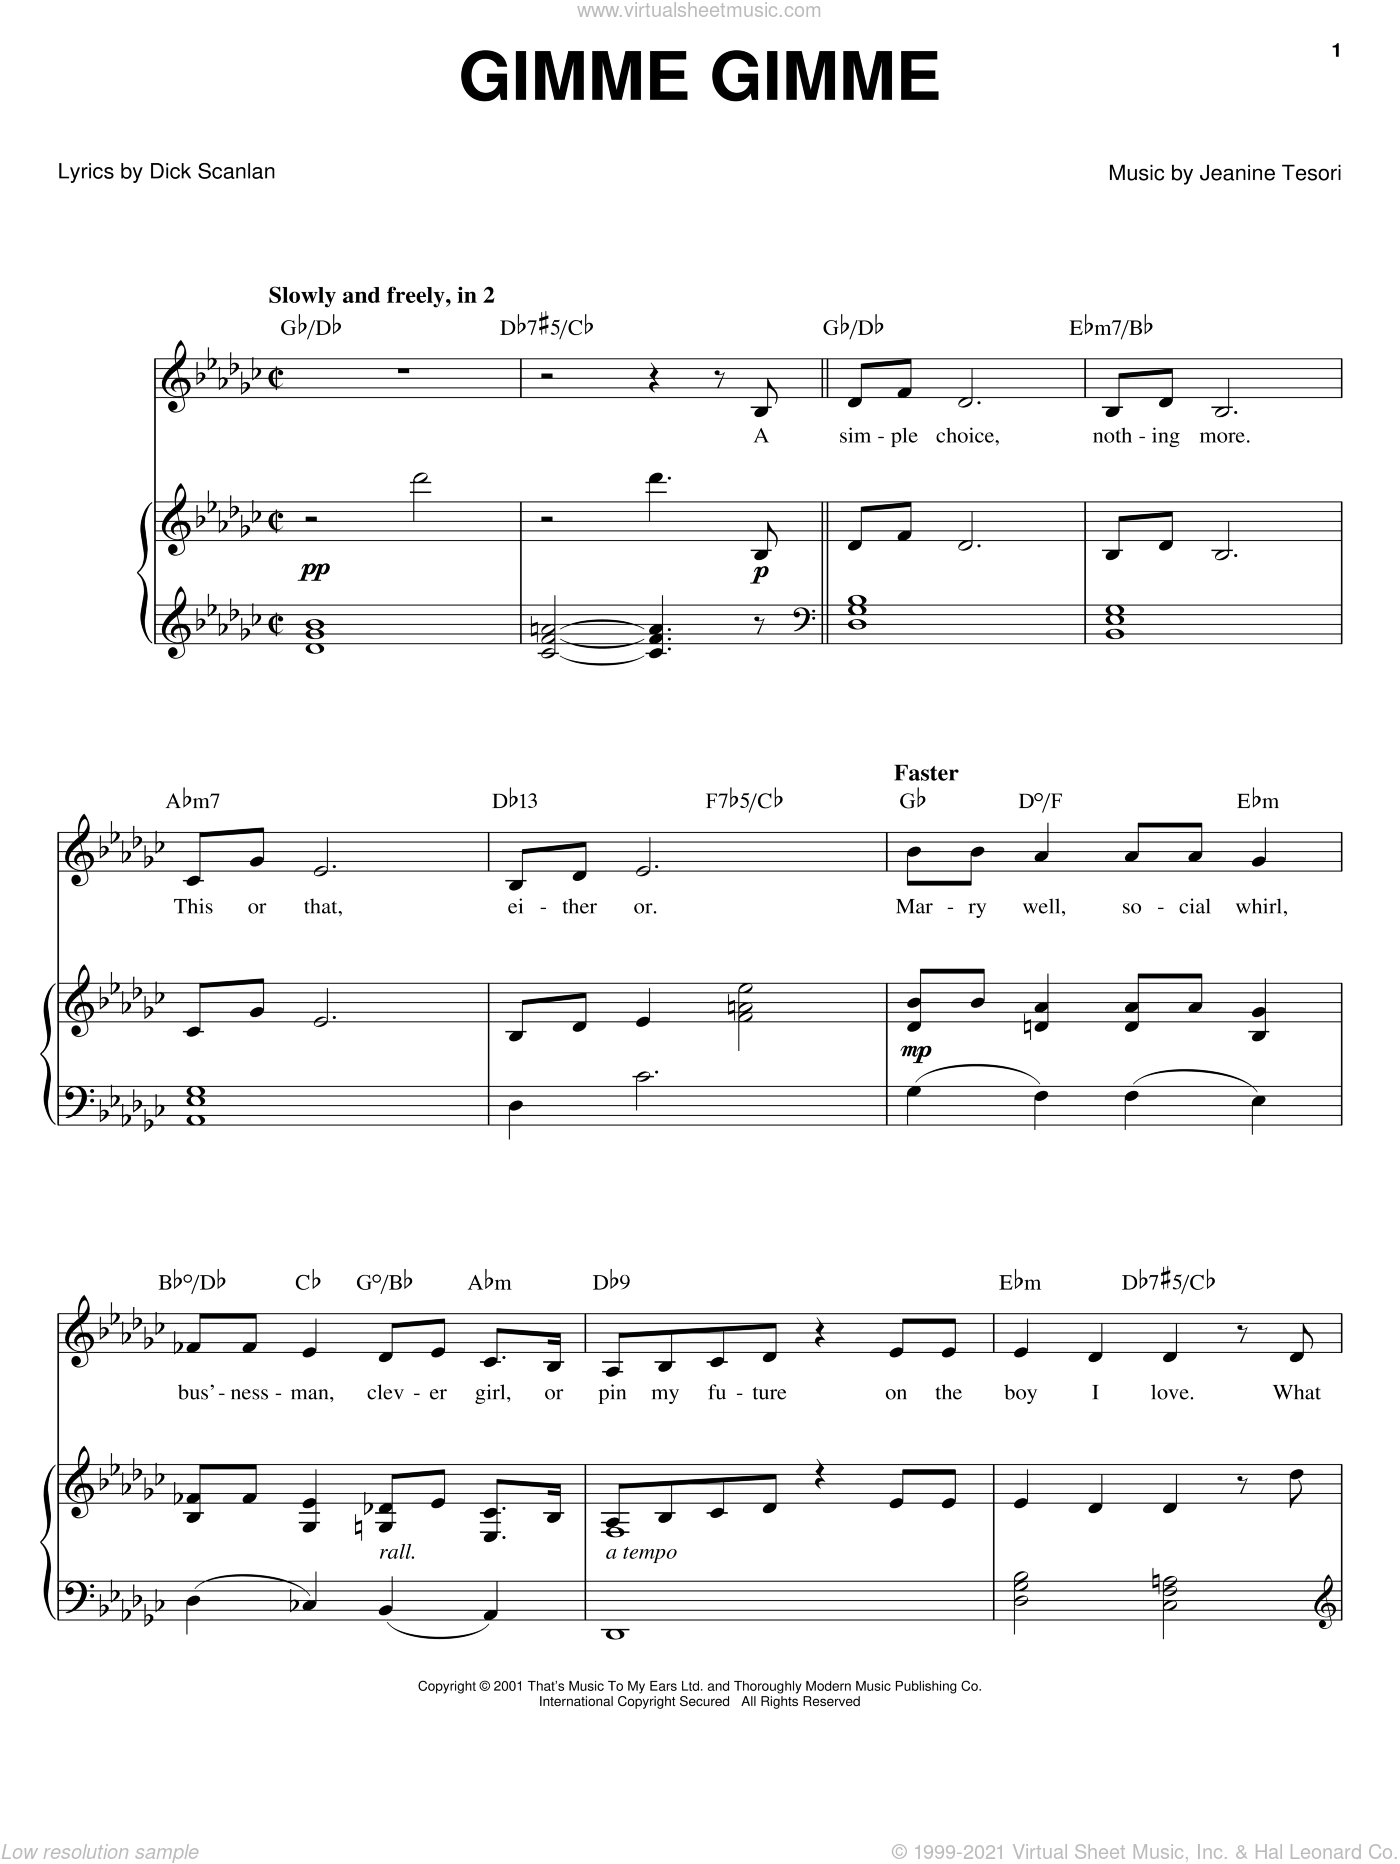 Gimme Gimme sheet music for voice, piano or guitar by Dick Scanlan, Thoroughly Modern Millie and Jeanine Tesori, intermediate skill level